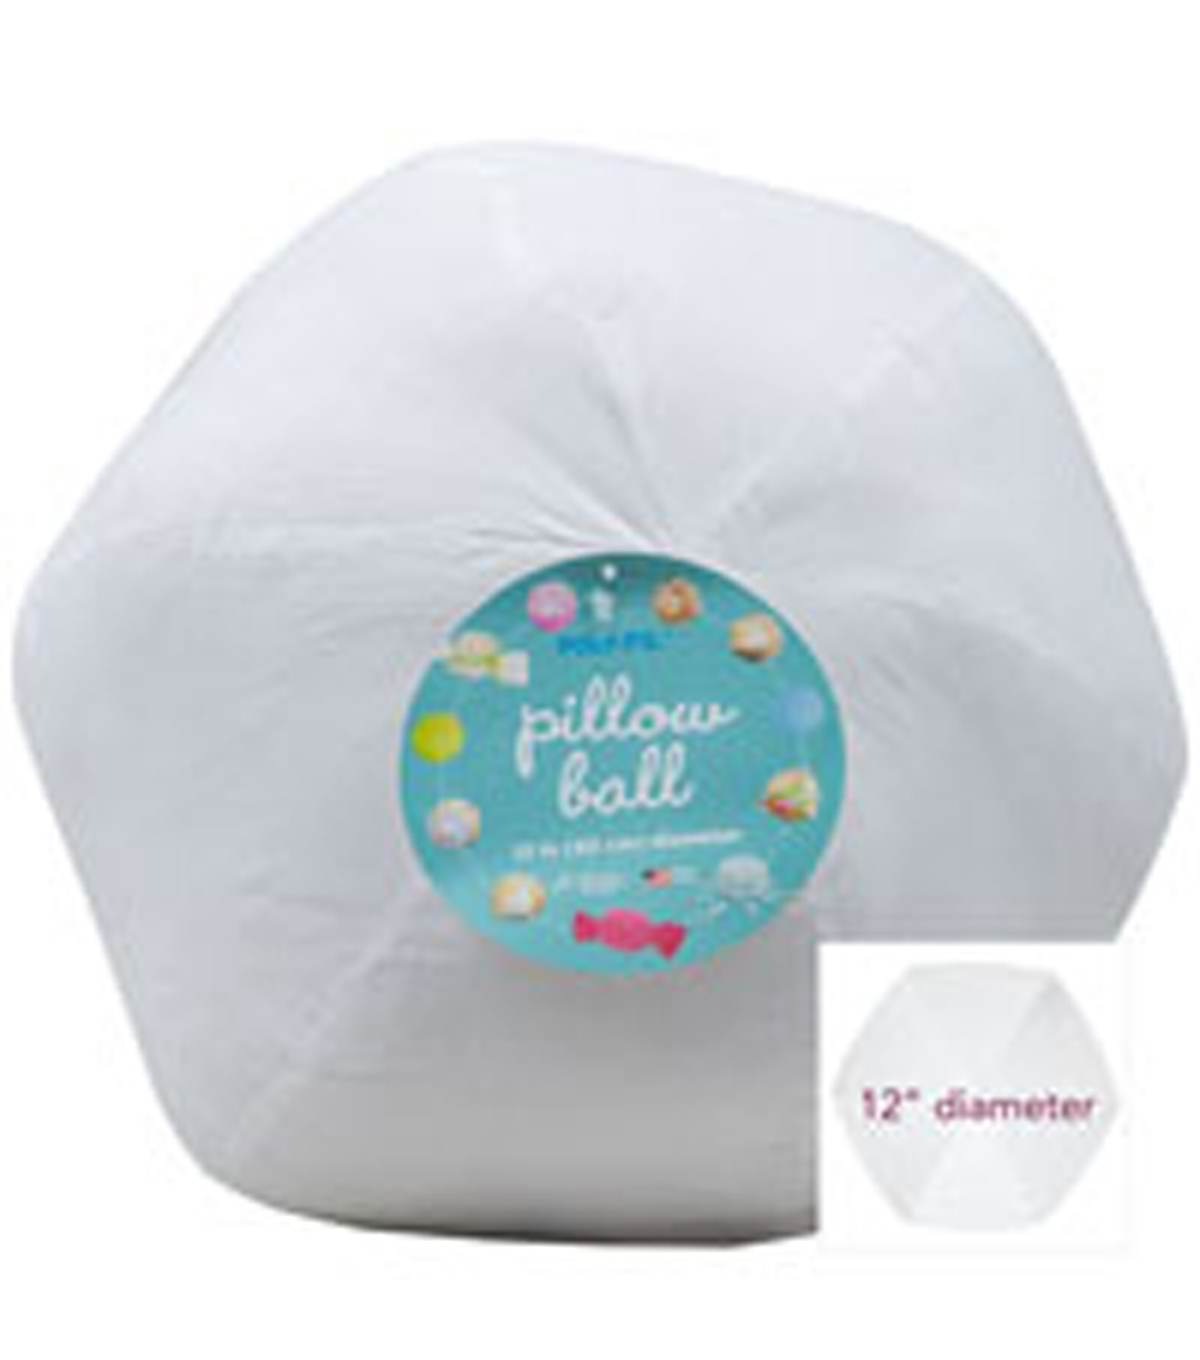 "100% Polyester Filled ""Downlike"" Pillow - 12"" Diameter"